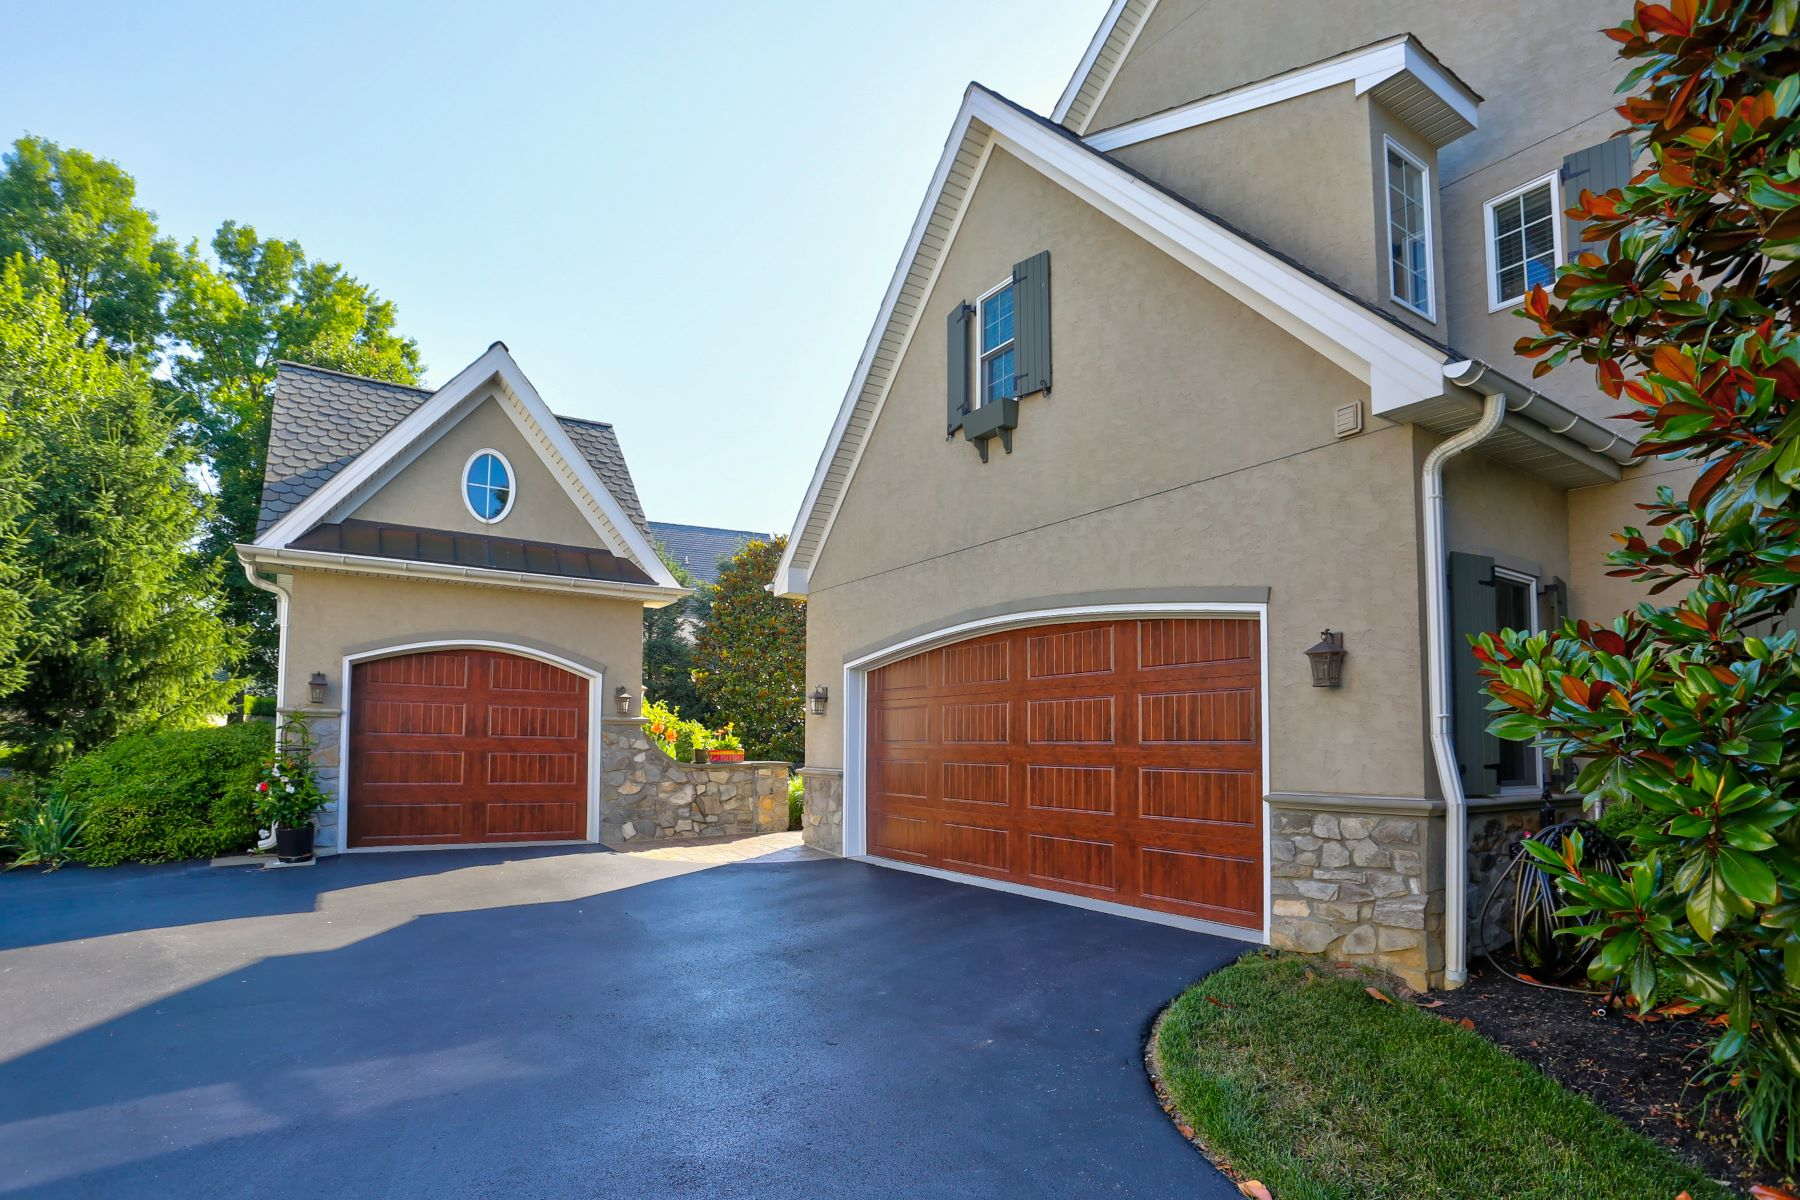 Additional photo for property listing at 659 Goose Neck Drive 659 Goose Neck Drive Lititz, Pennsylvania 17543 United States